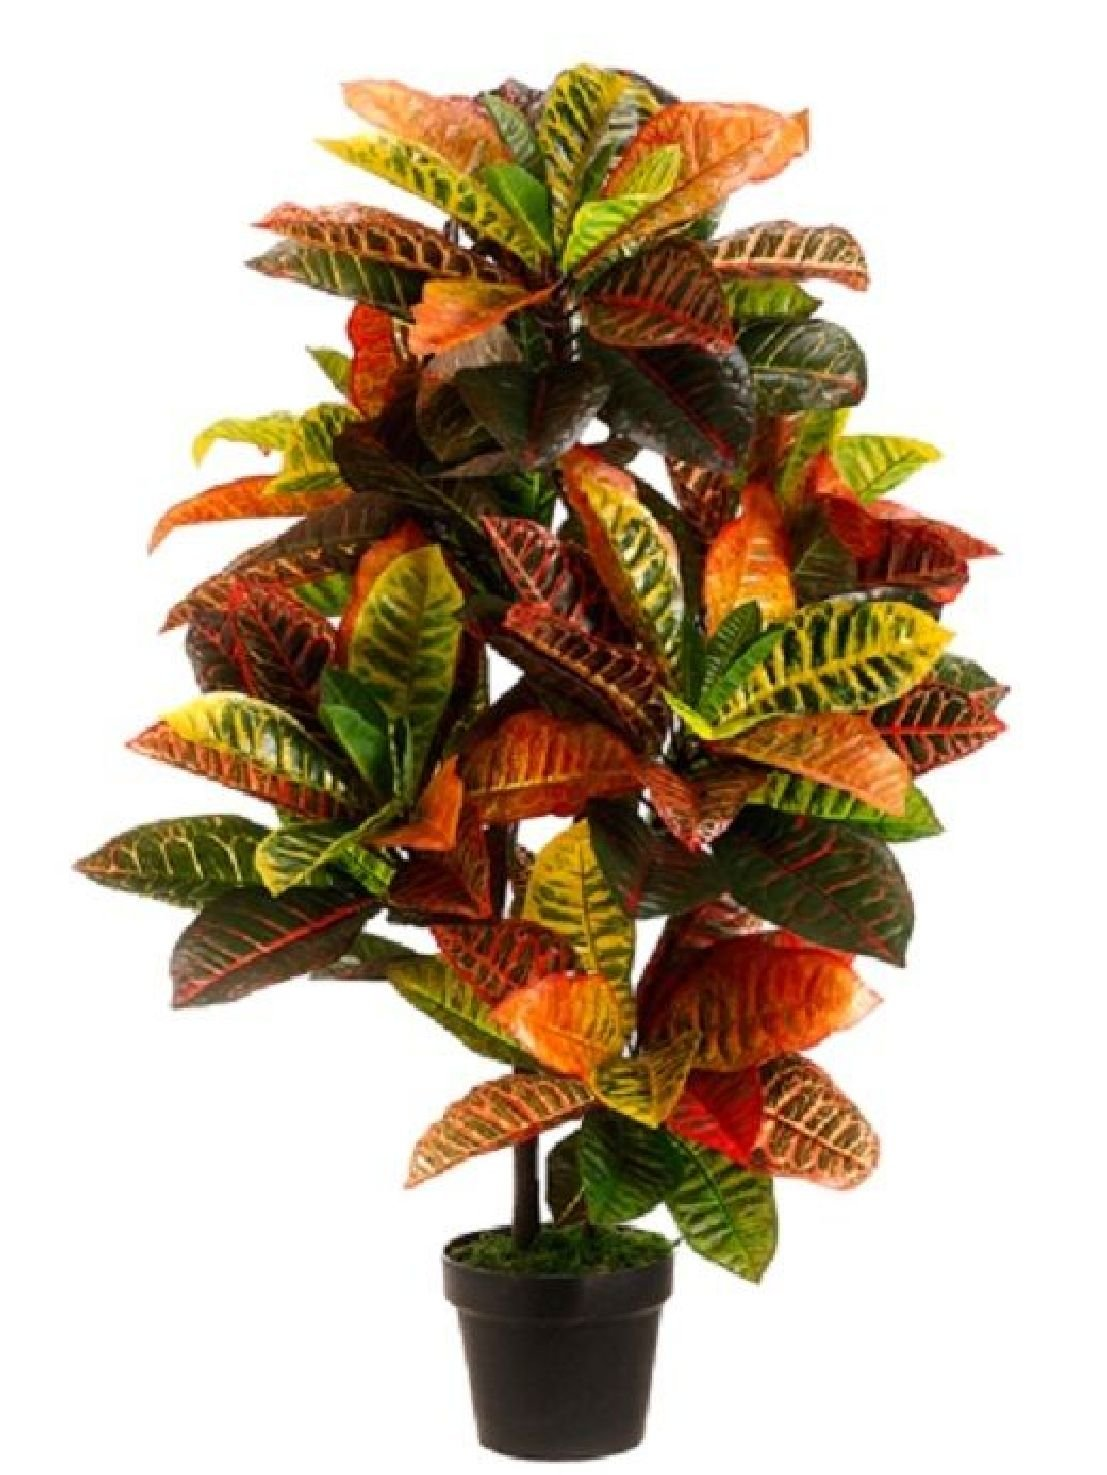 3' Artificial Croton Plant in Pot (Pack of 2) Outdoor UV Topiary Tree Silk Palm